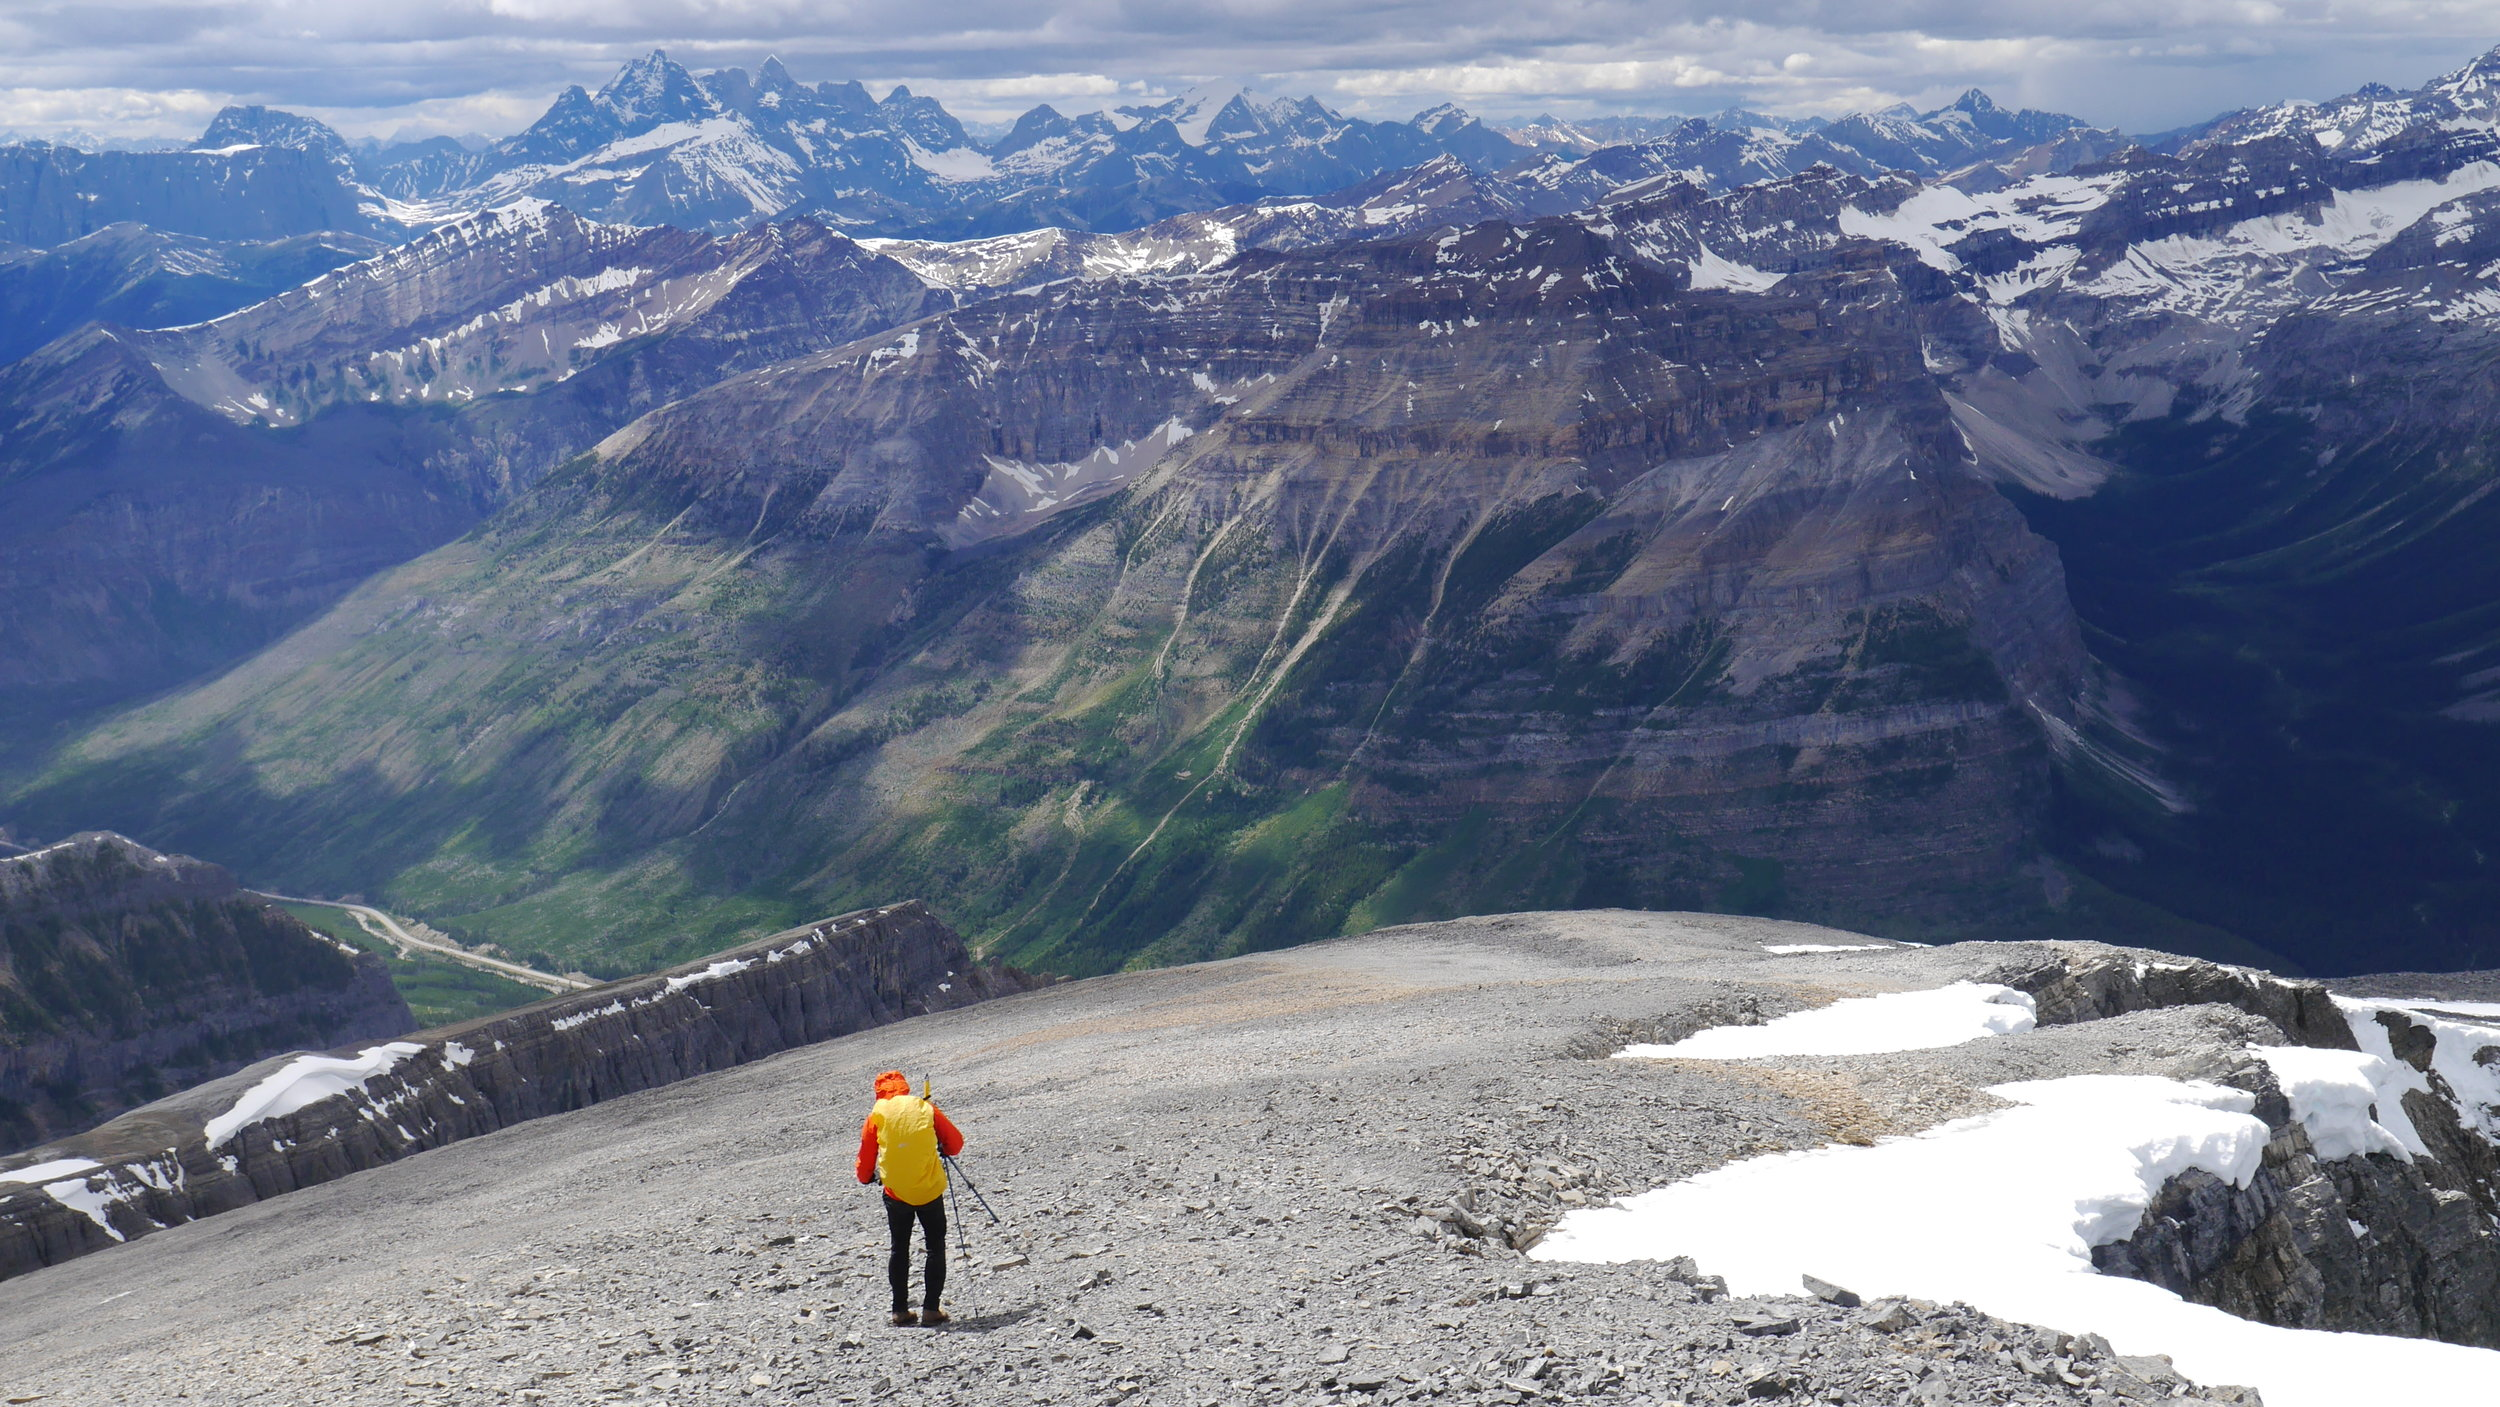 Looking towards Lake Louise group from Storm Mountain